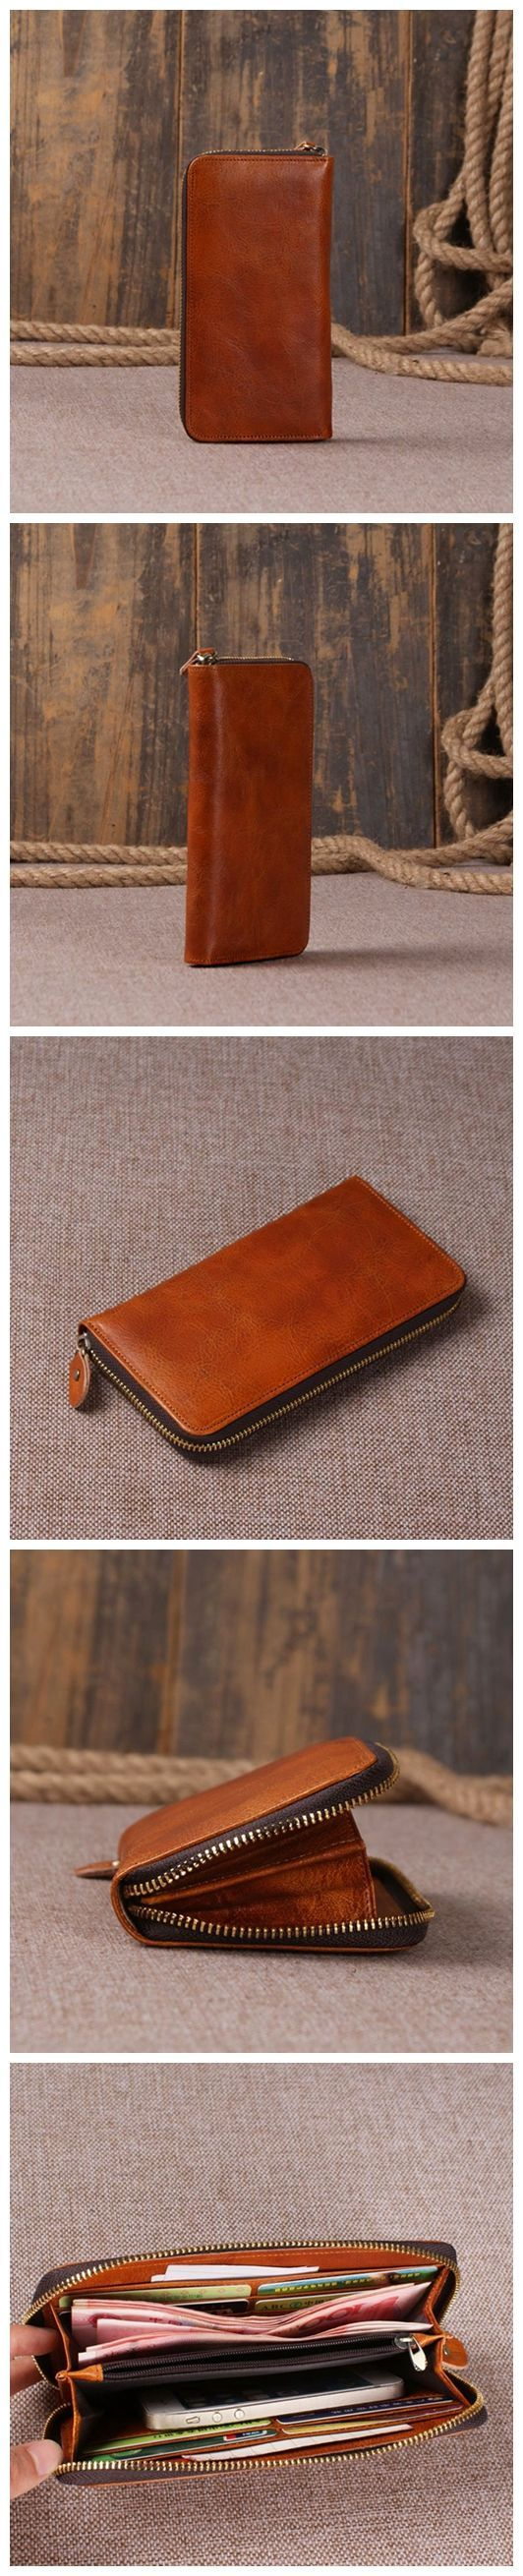 Handmade Leather Wallet Card Holder Leather Purse Men's Fashion Wallet